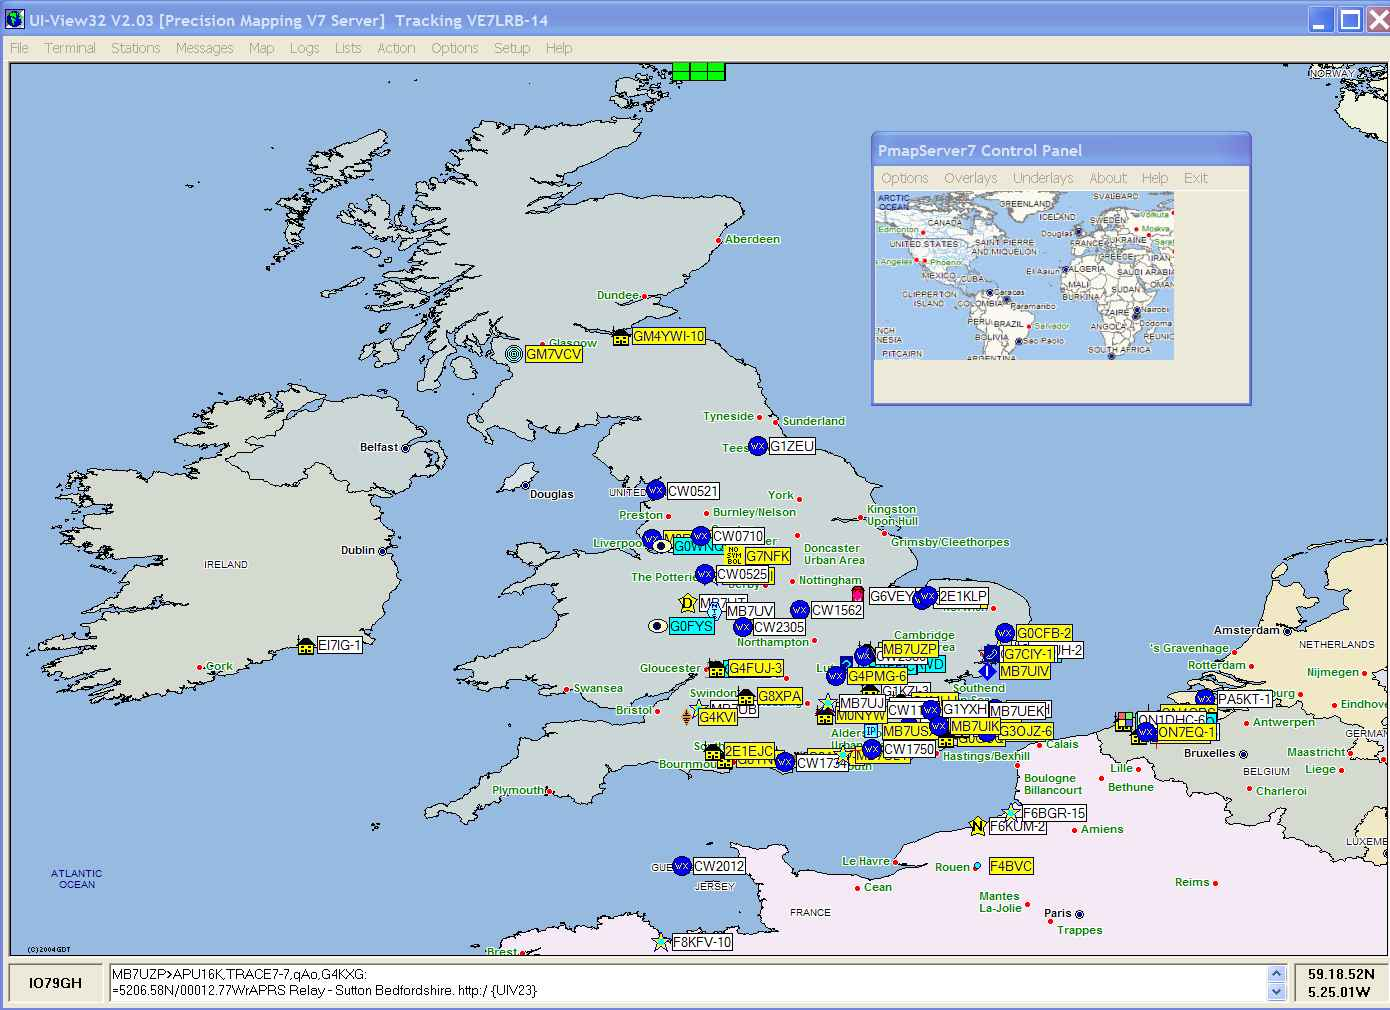 Screenshot of UK in UI-View32 using PMapServer7 and Precision Mapping 7. Click picture to go back.